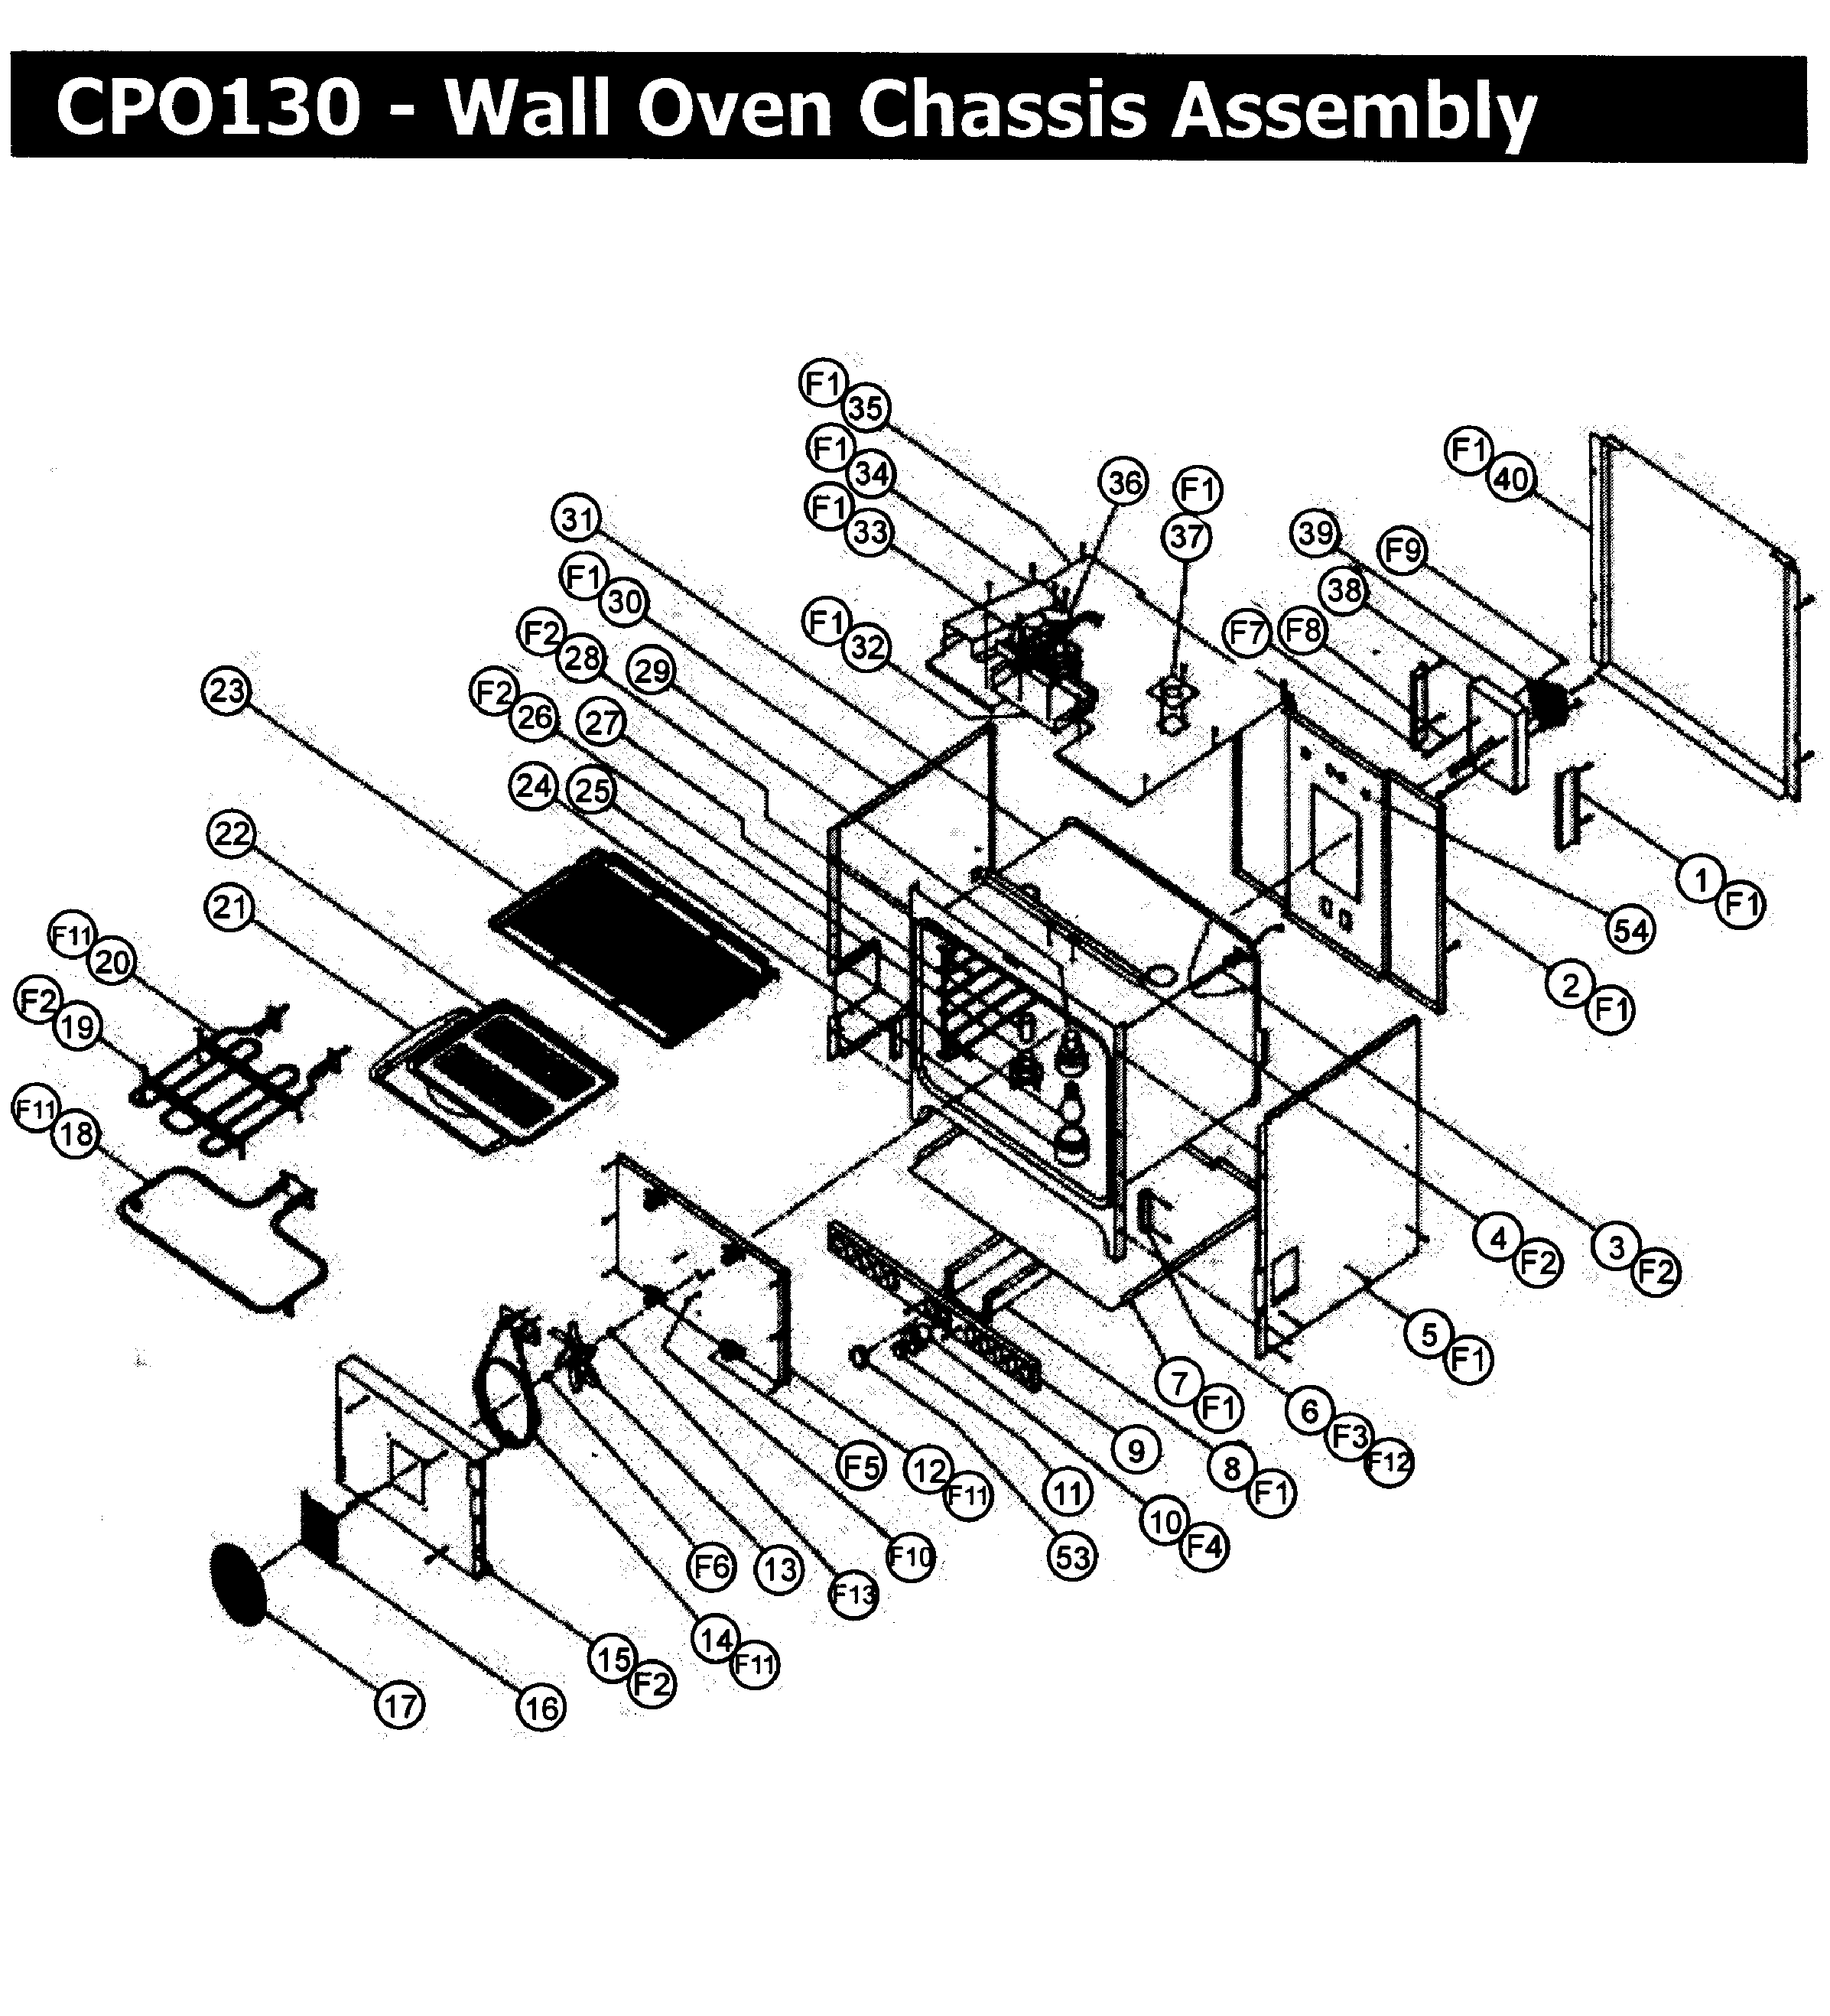 Dacor cpo130 wall oven timer stove clocks and appliance timers cpo130 wall oven chassis assy parts diagram sciox Choice Image